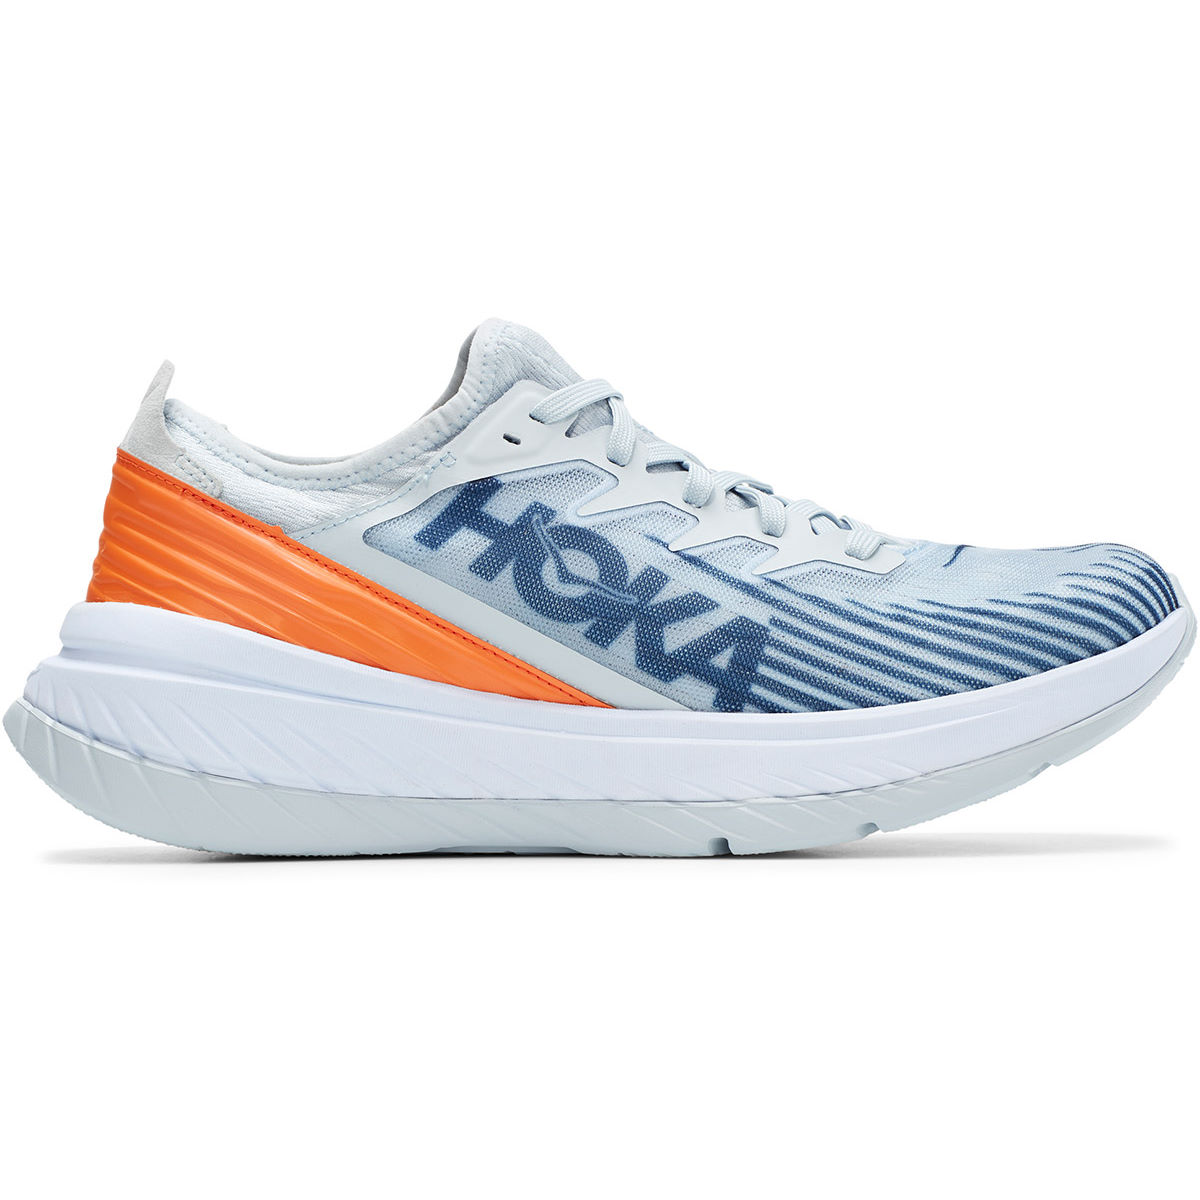 Hoka One One Carbon X-spe Running Shoes - Uk 5 Plein Air / Birds Of